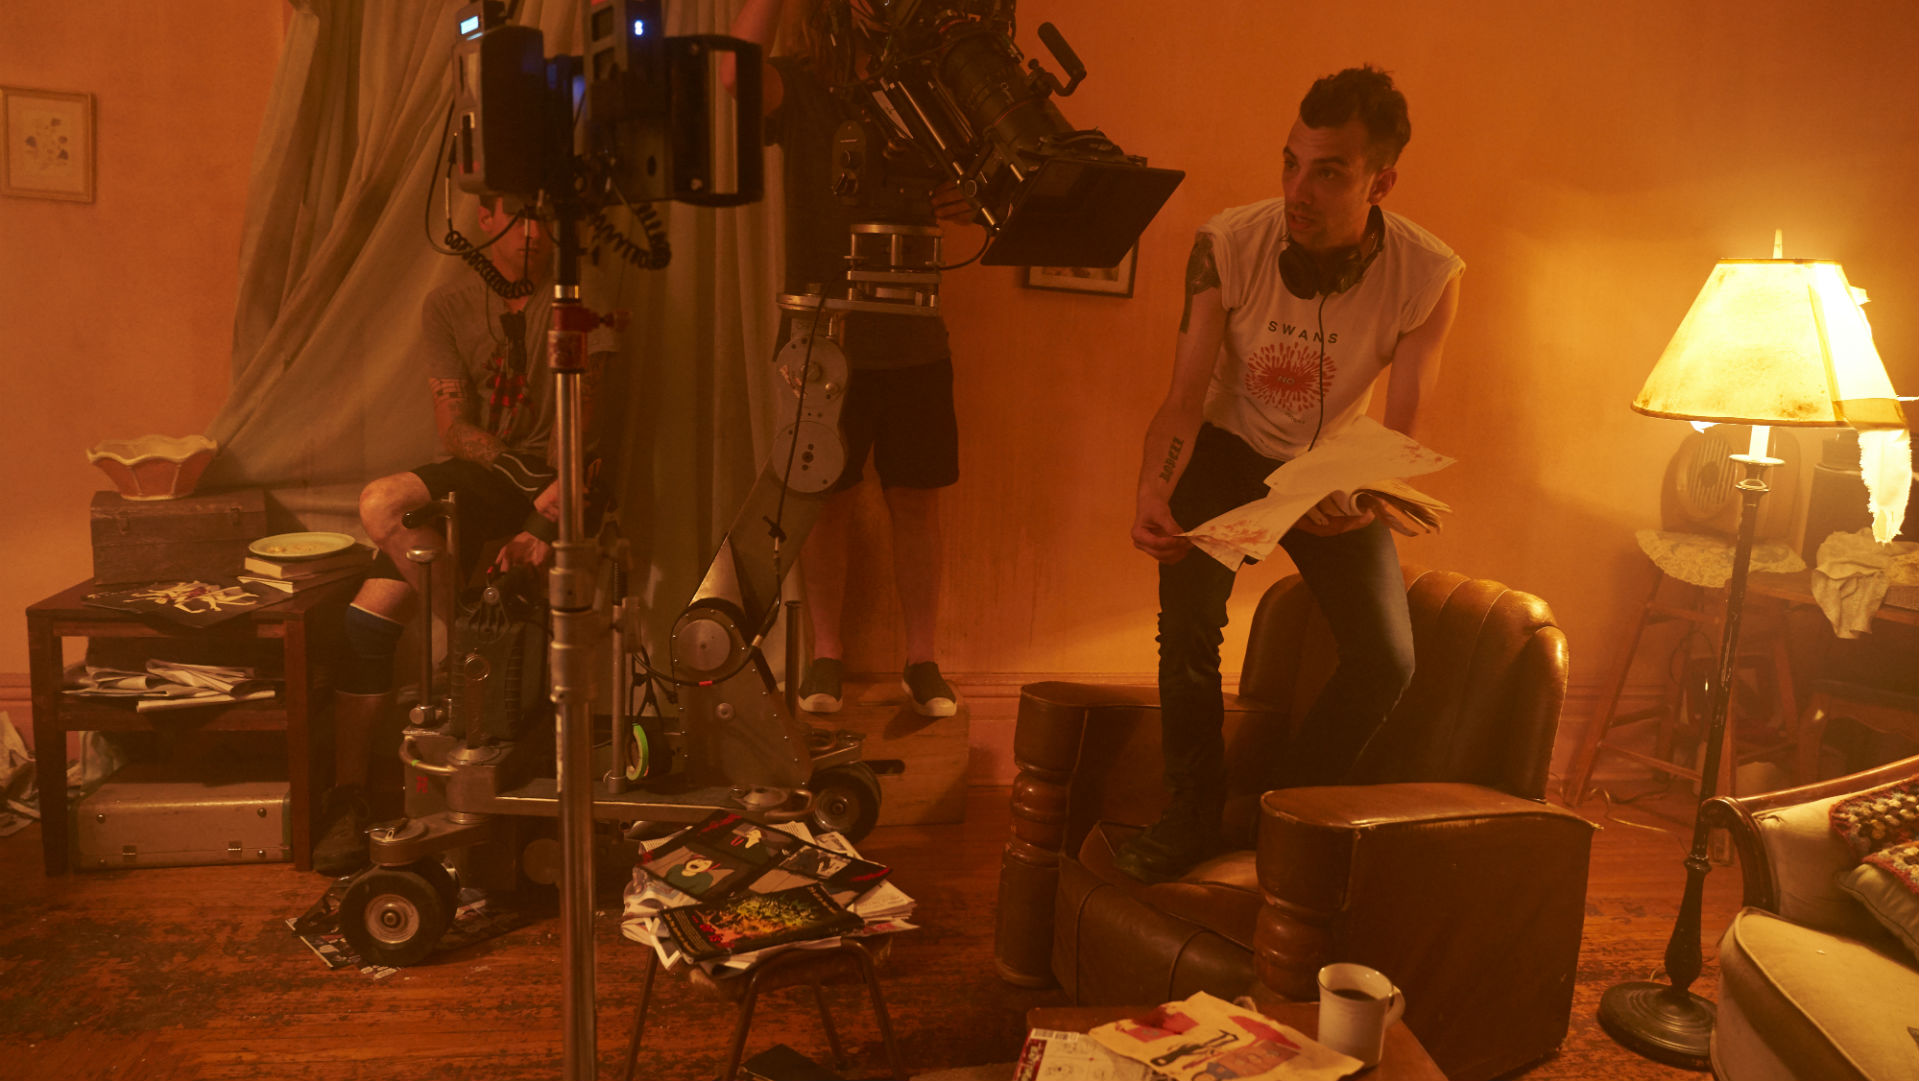 Random Acts of Violence Interview: Jay Baruchel Discusses Violent Films, American Culture Shock & Owning Way Too Many DVDs